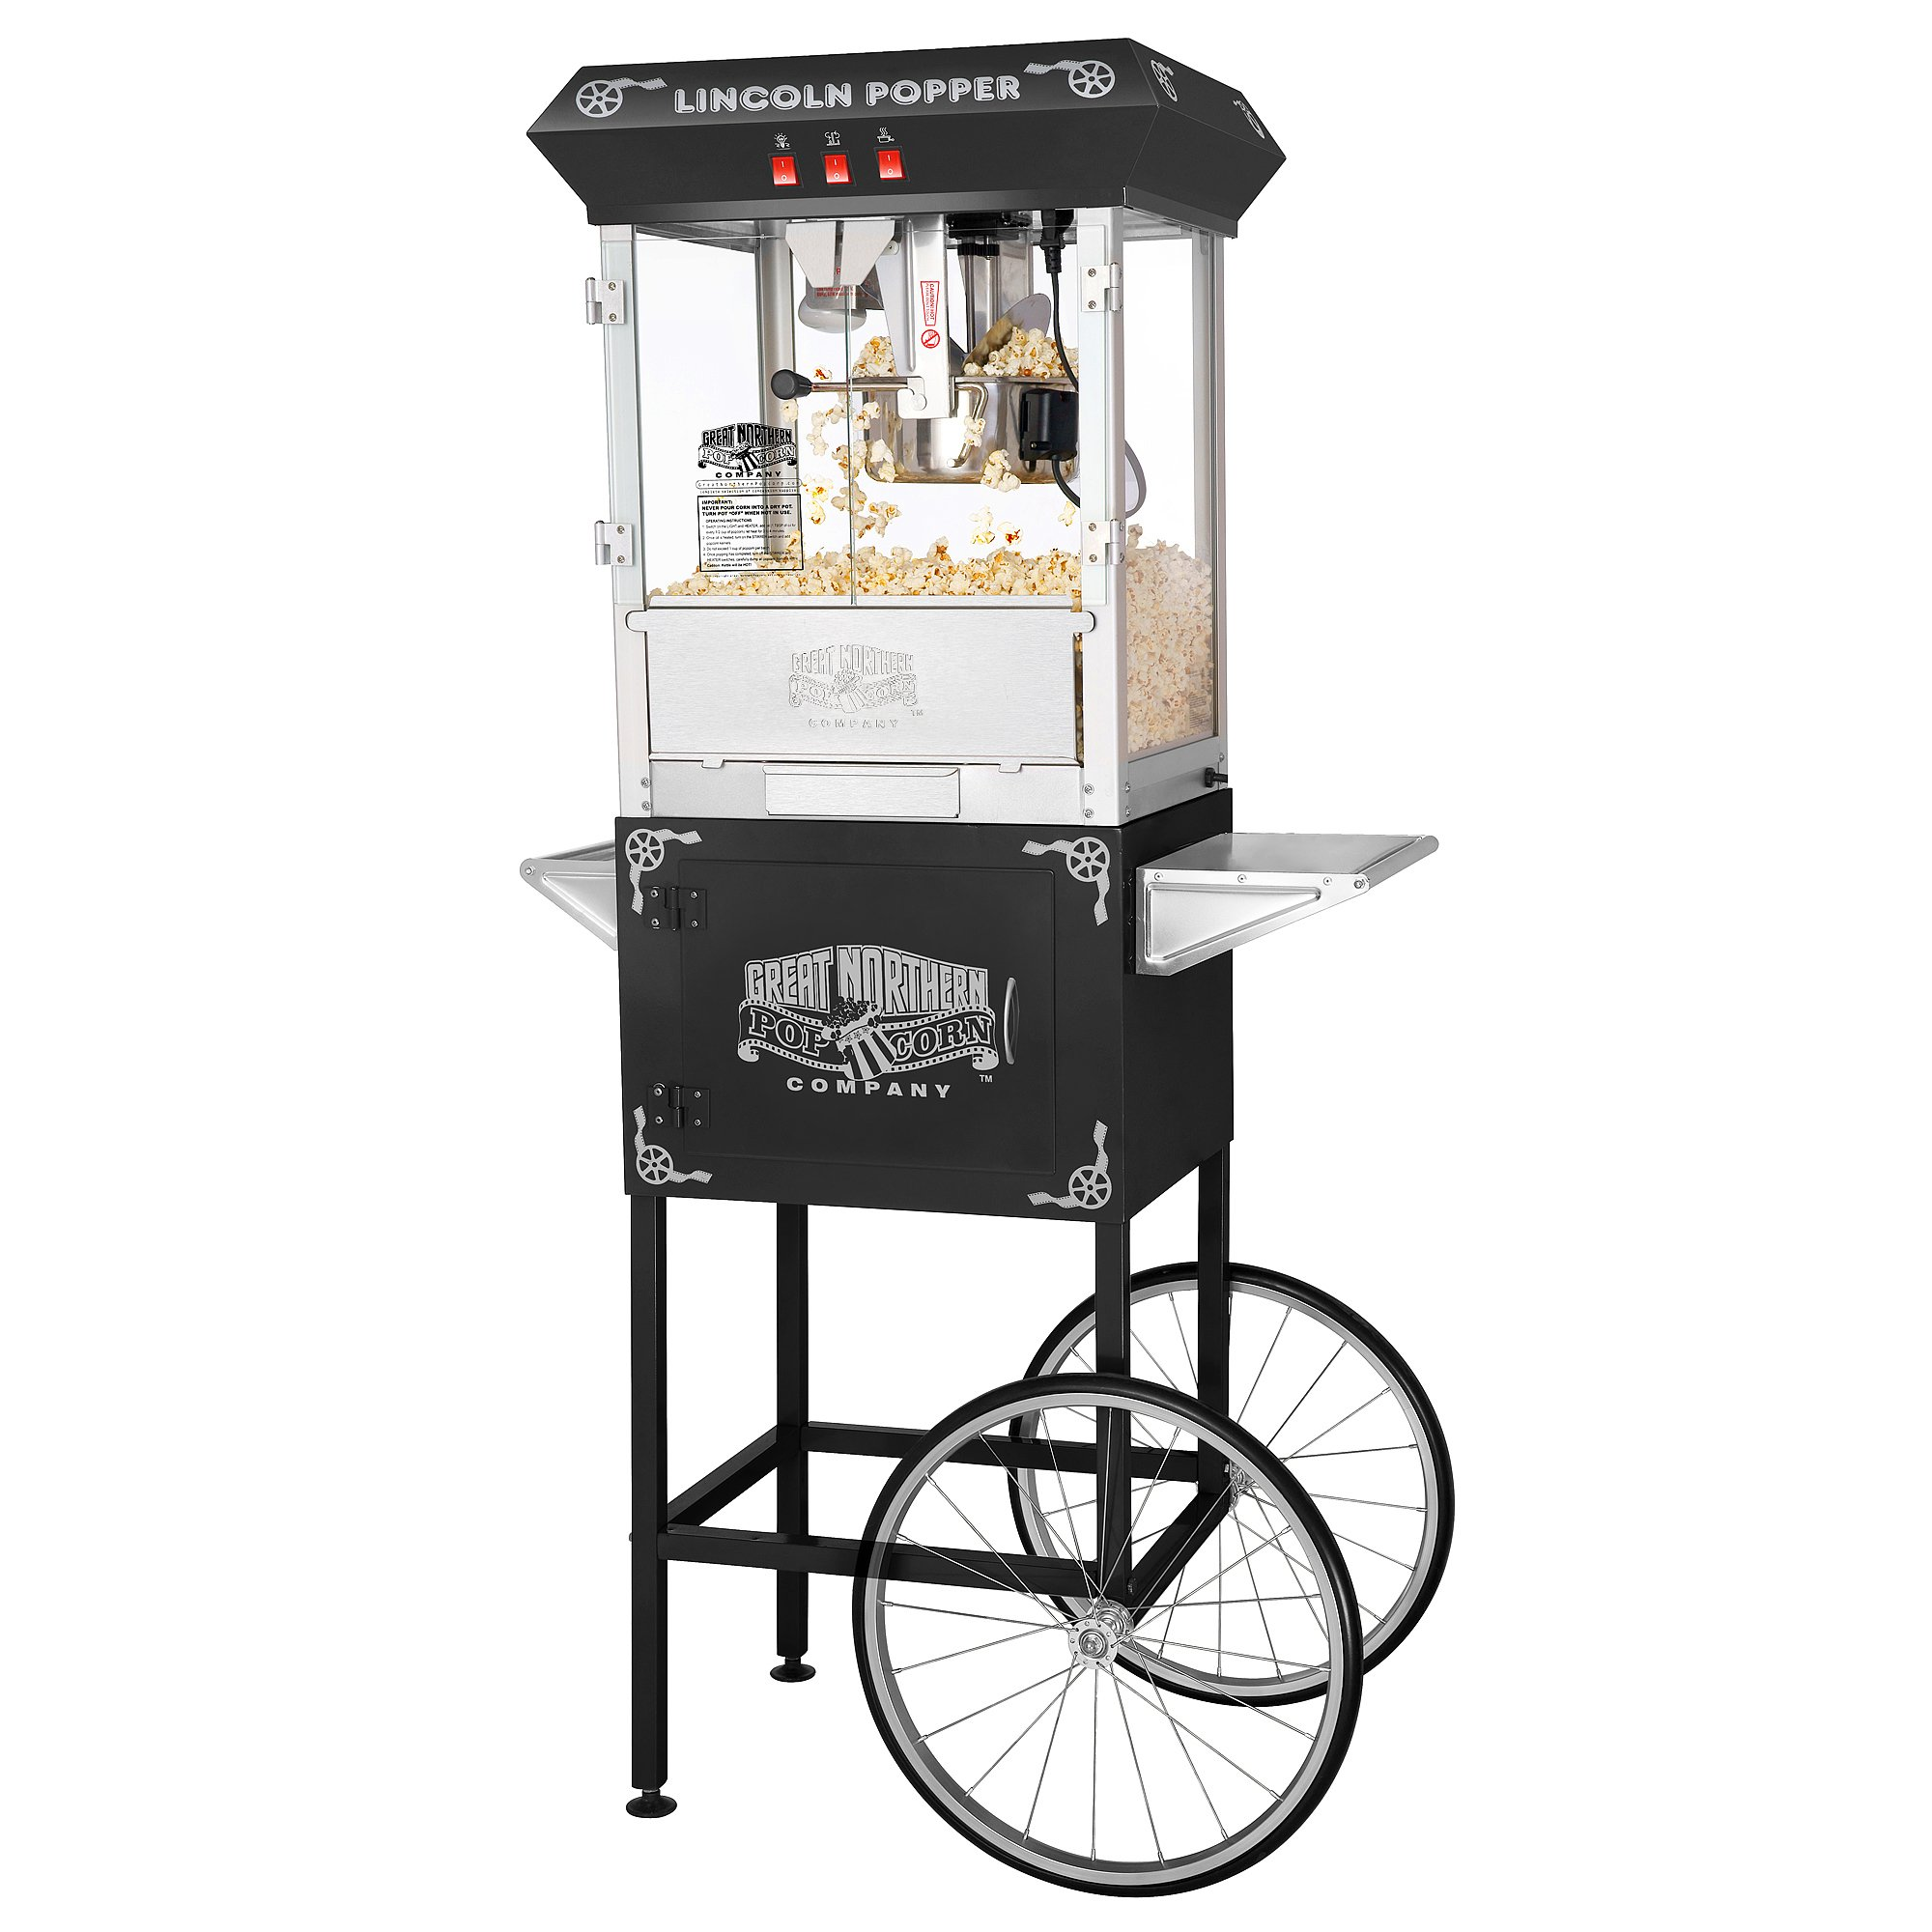 6005 Great Northern Black Antique Style Lincoln Popcorn Popper Machine w/Cart 8 Oz by Great Northern Popcorn Company